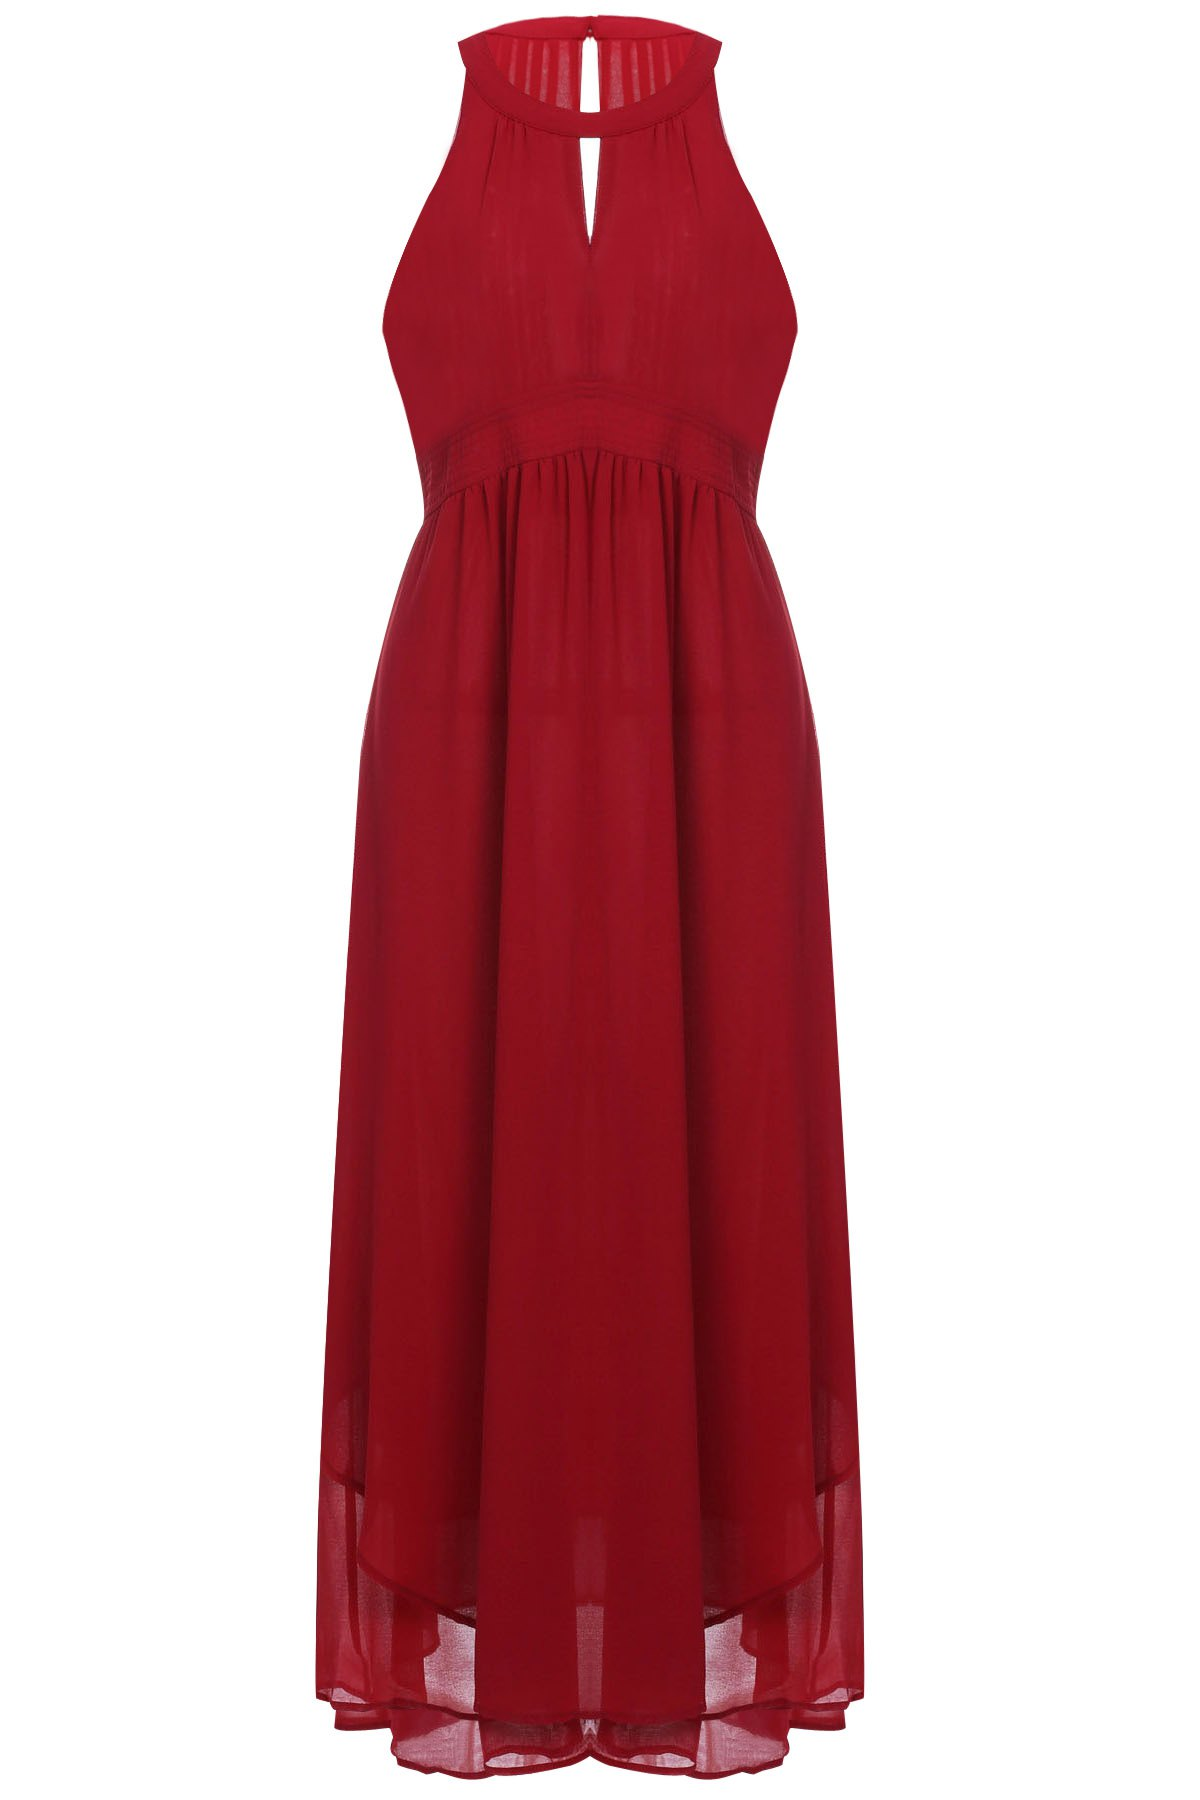 Charming Solid Color Hollow Out Sleeveless Chiffon Maxi Dress For Women - WINE RED XS